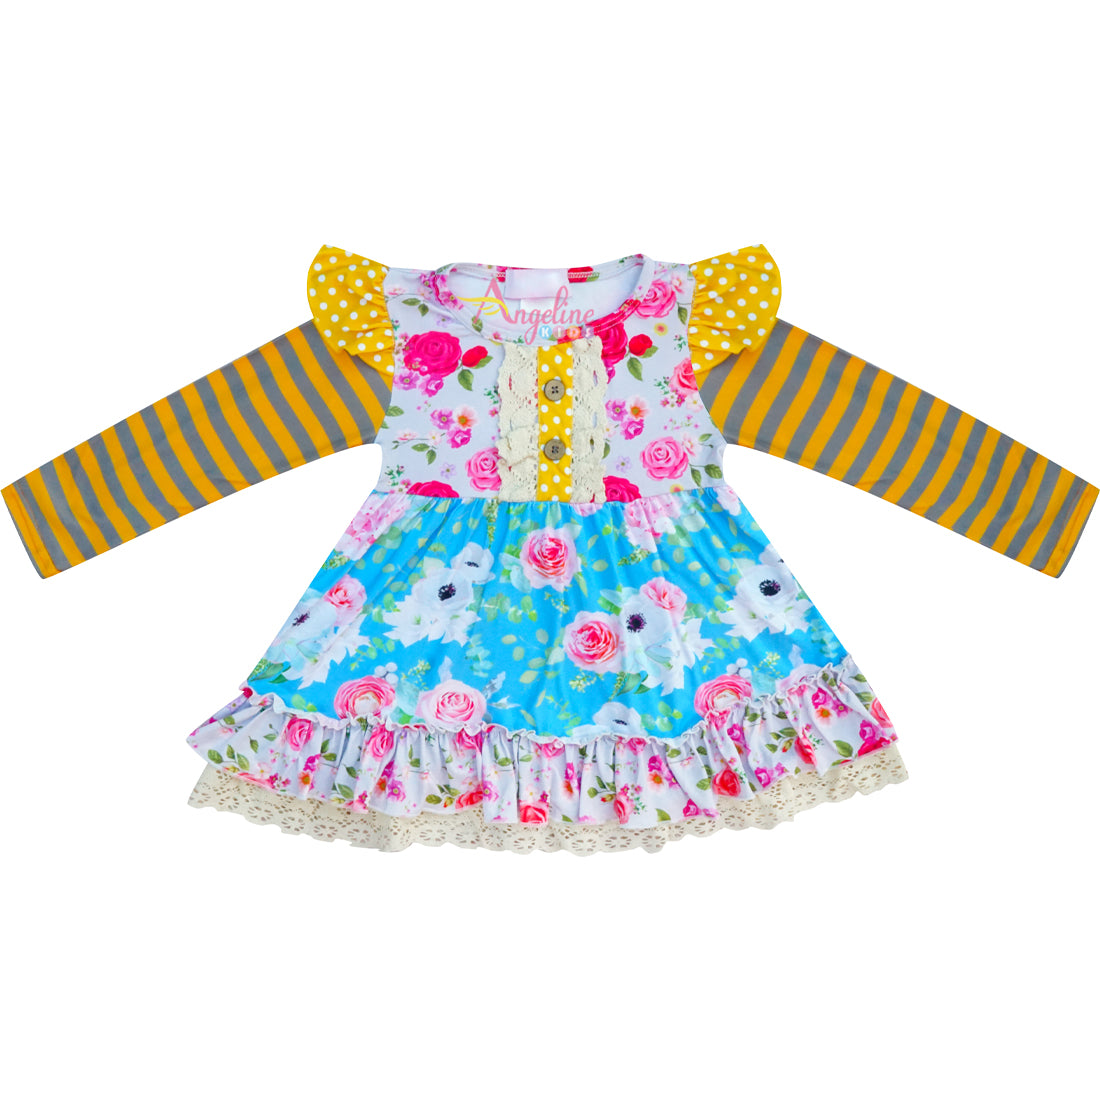 Baby Toddler Little Girls Fall Floral Ruffle Top Leggings Set - Mustard/Gray